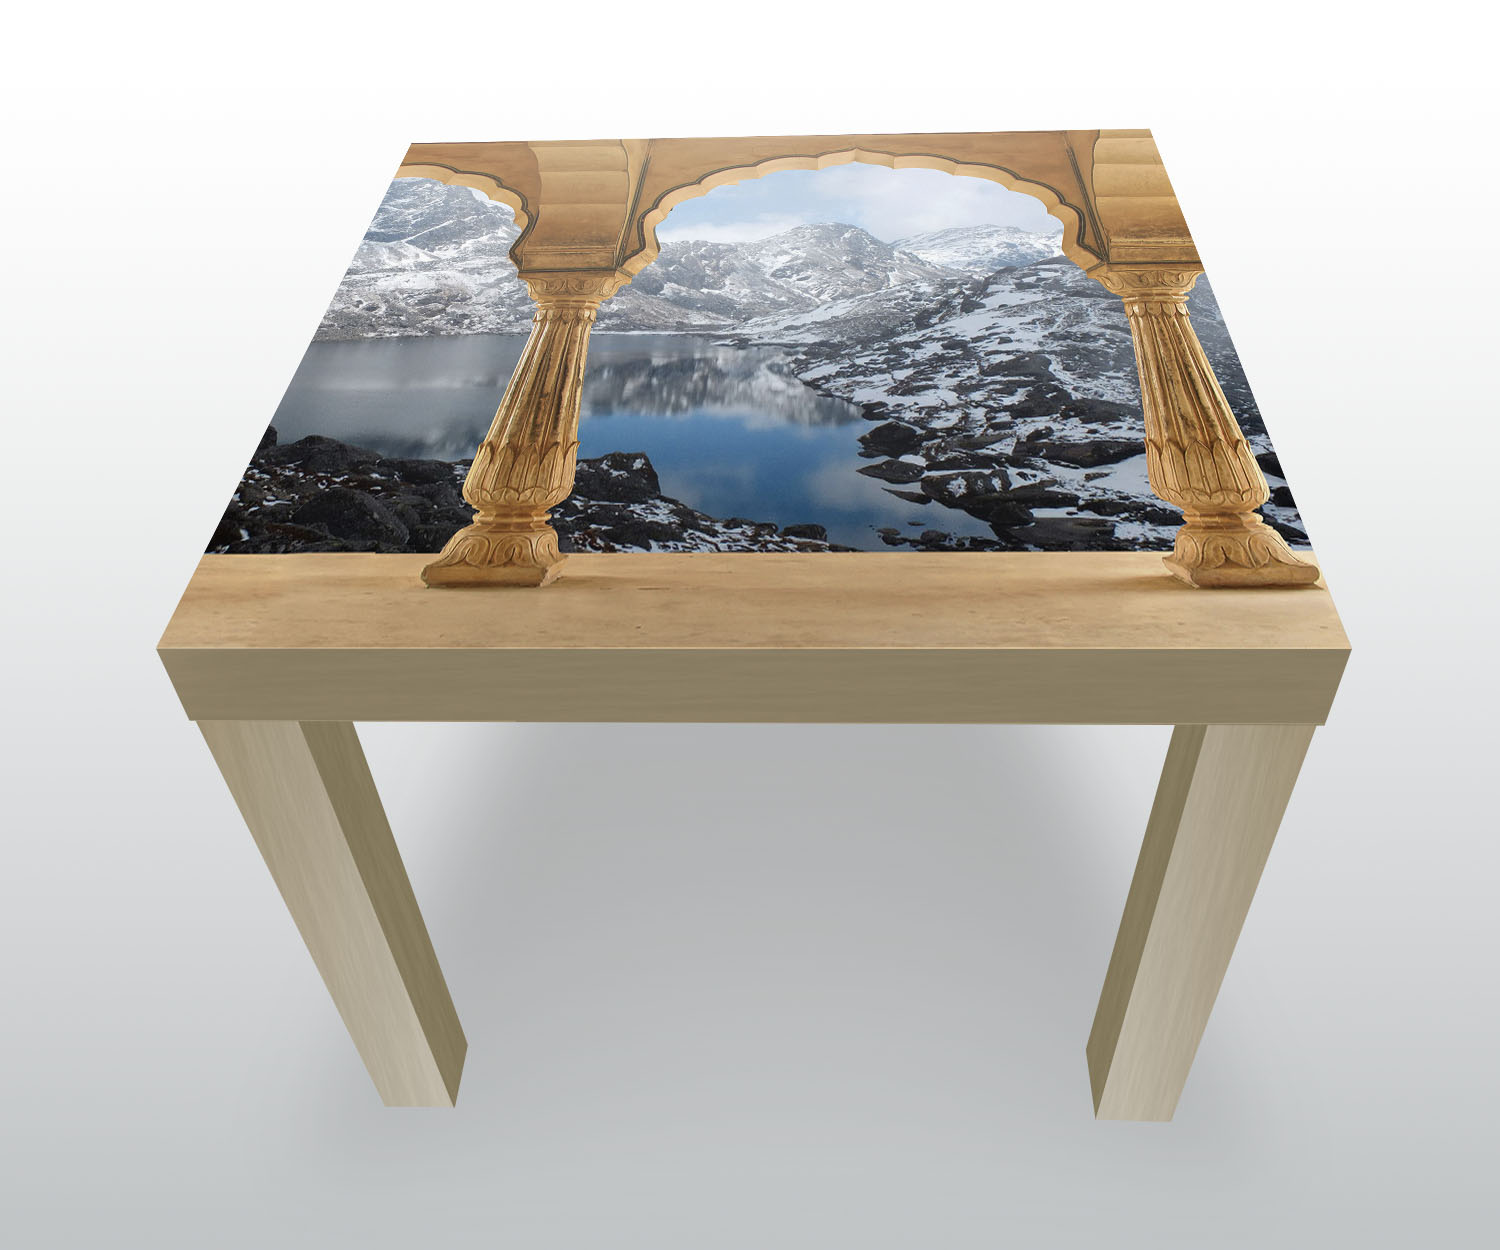 side table column snowy mountains landscape design table ebay. Black Bedroom Furniture Sets. Home Design Ideas